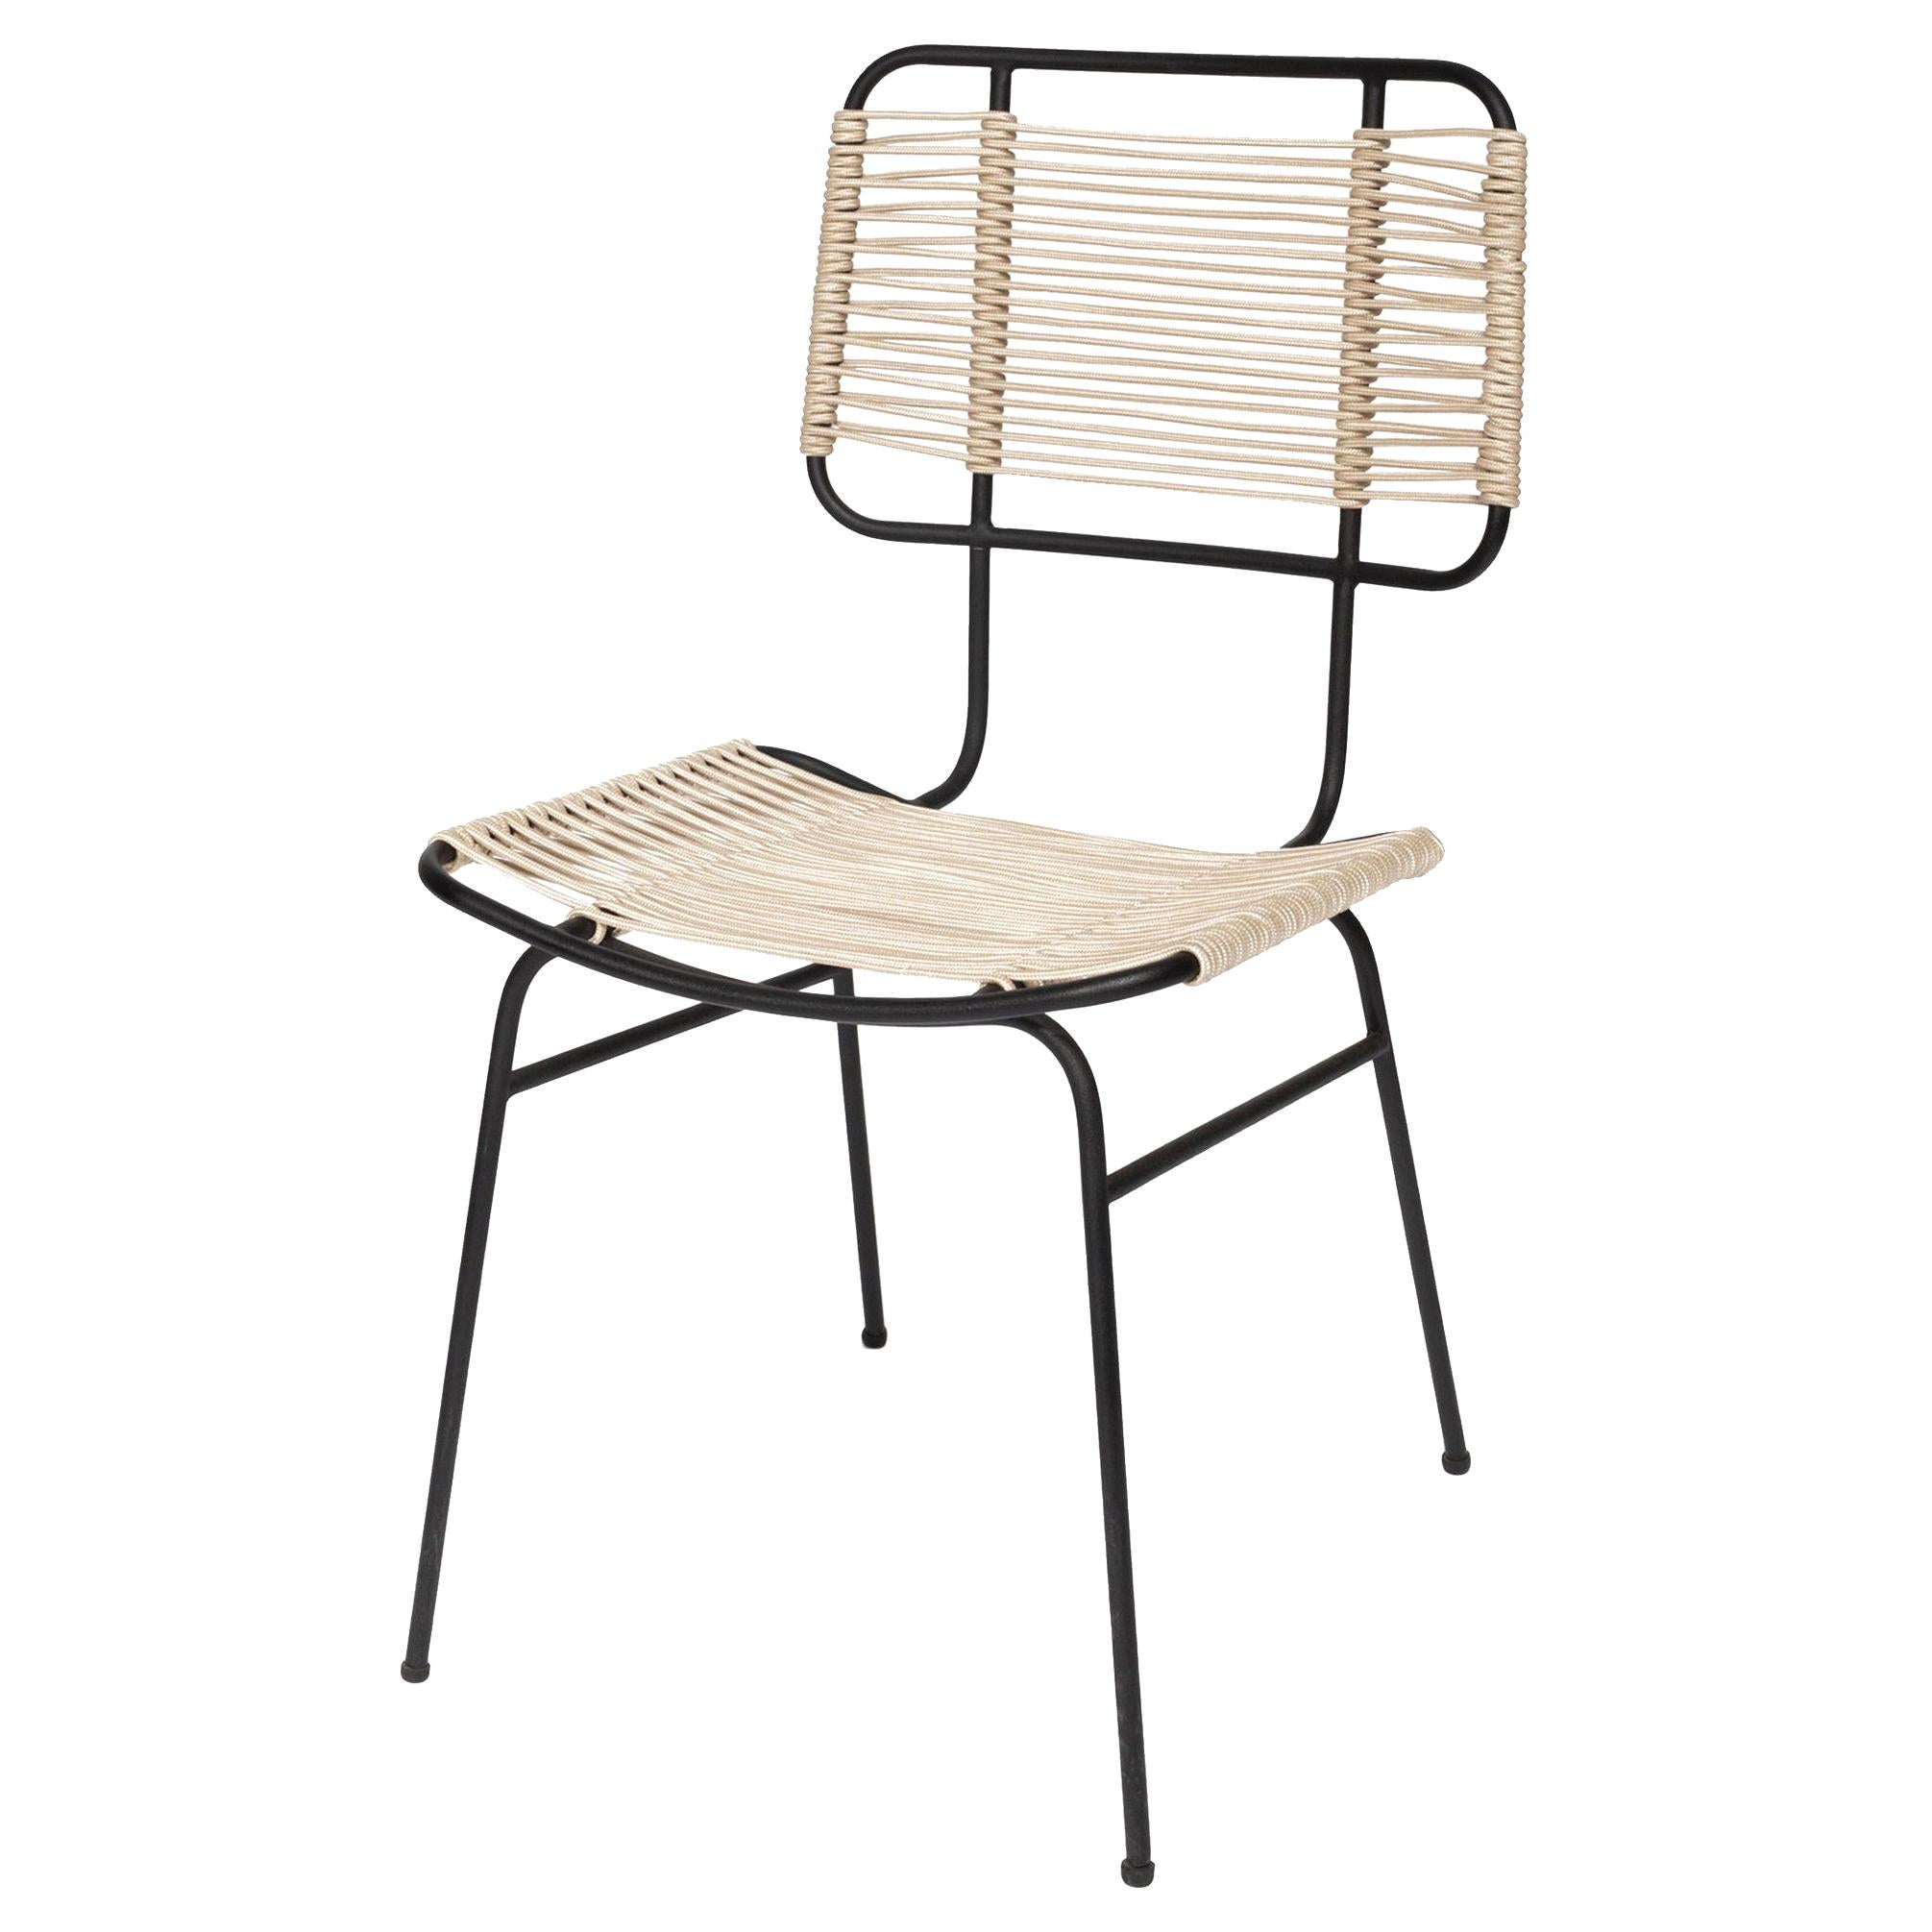 Arena Steel with Rope Weave Chair